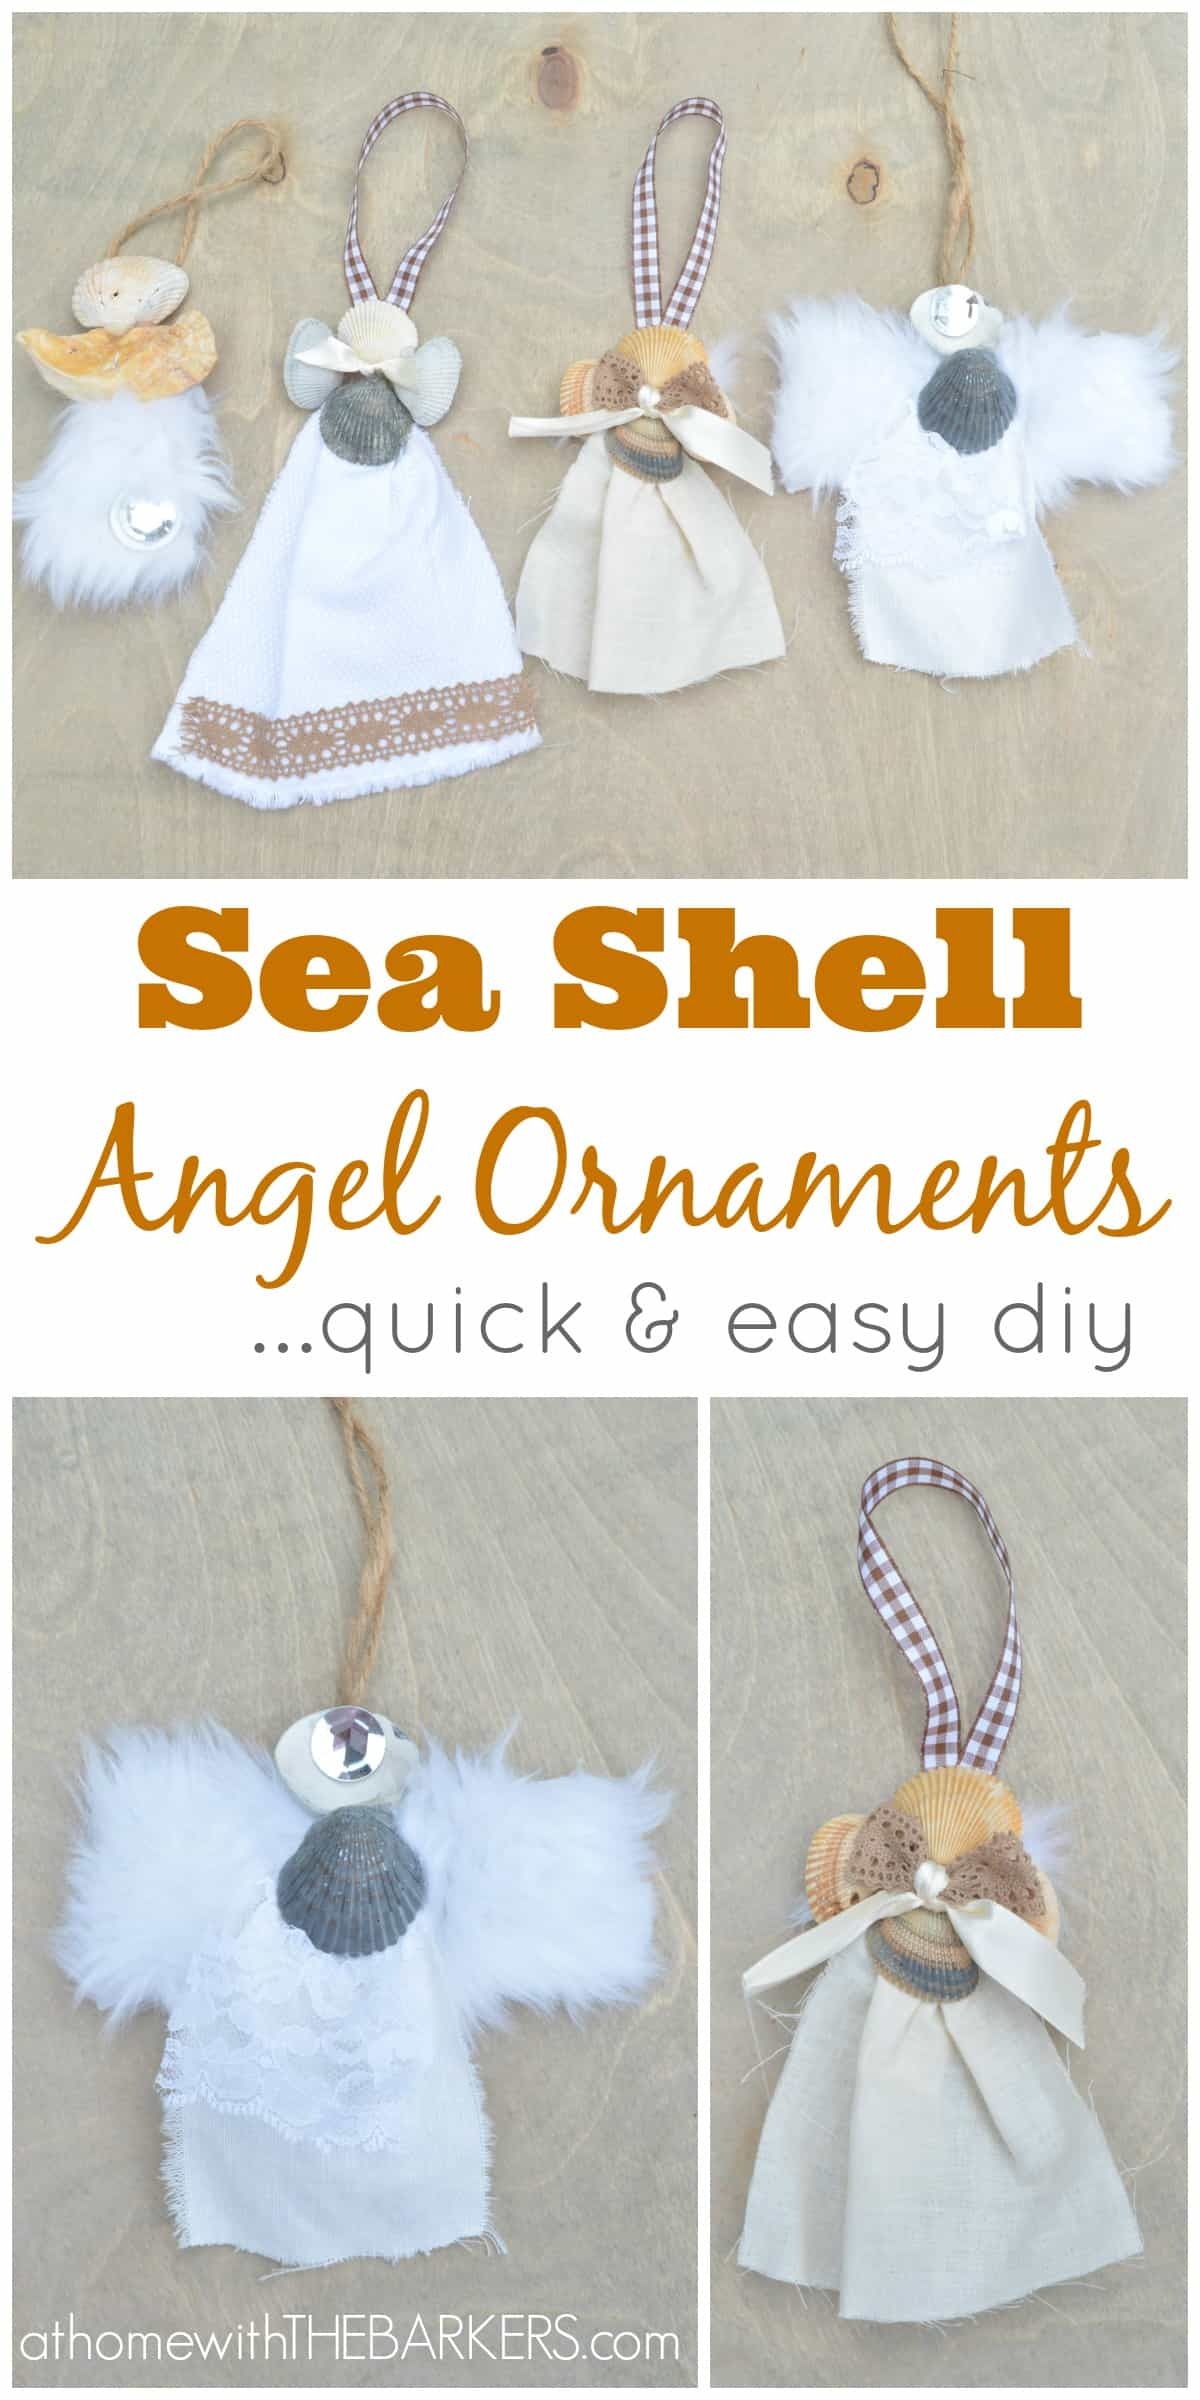 Seashell christmas ornaments - Sea Shell Angel Ornaments Or Gift Accessory At Home With The Barkers